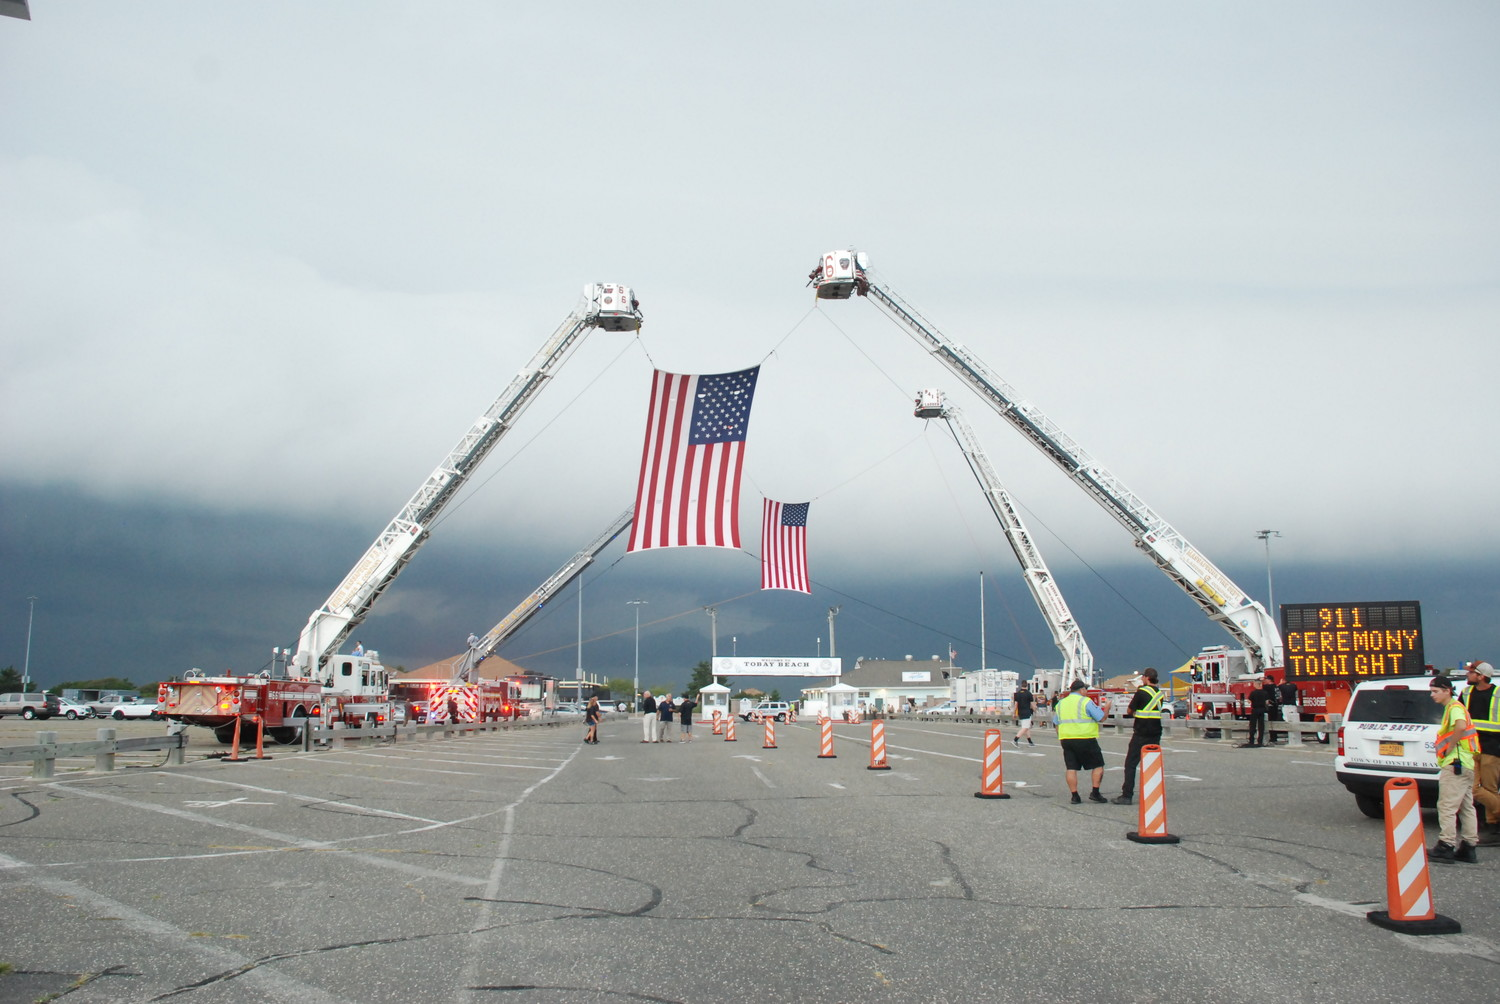 Local fire departments raised two huge flags over the Tobal Beach parking lot to welcome the relatives of those who died on Sept. 11, 2001.